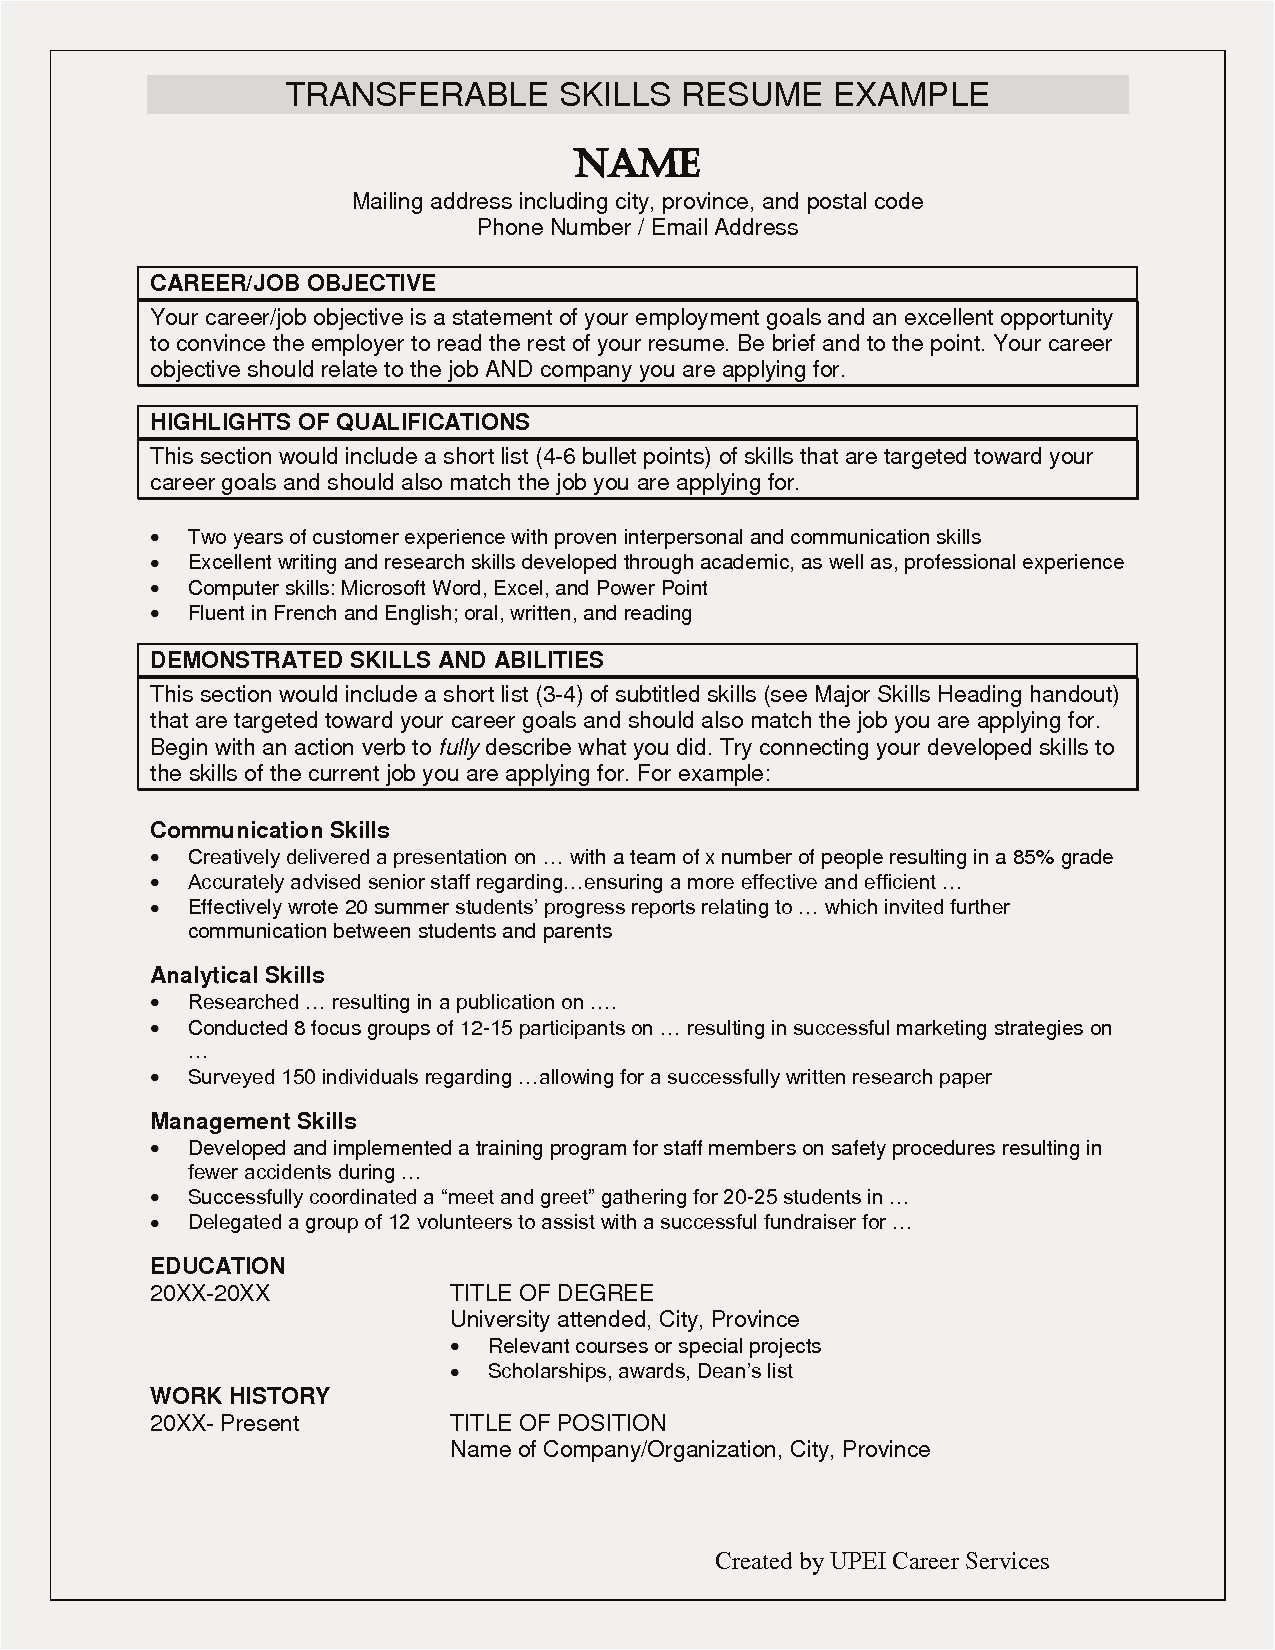 Exemple De Cv Word Resumes for Marketing Jobs New Resume Sample Resume for Marketing